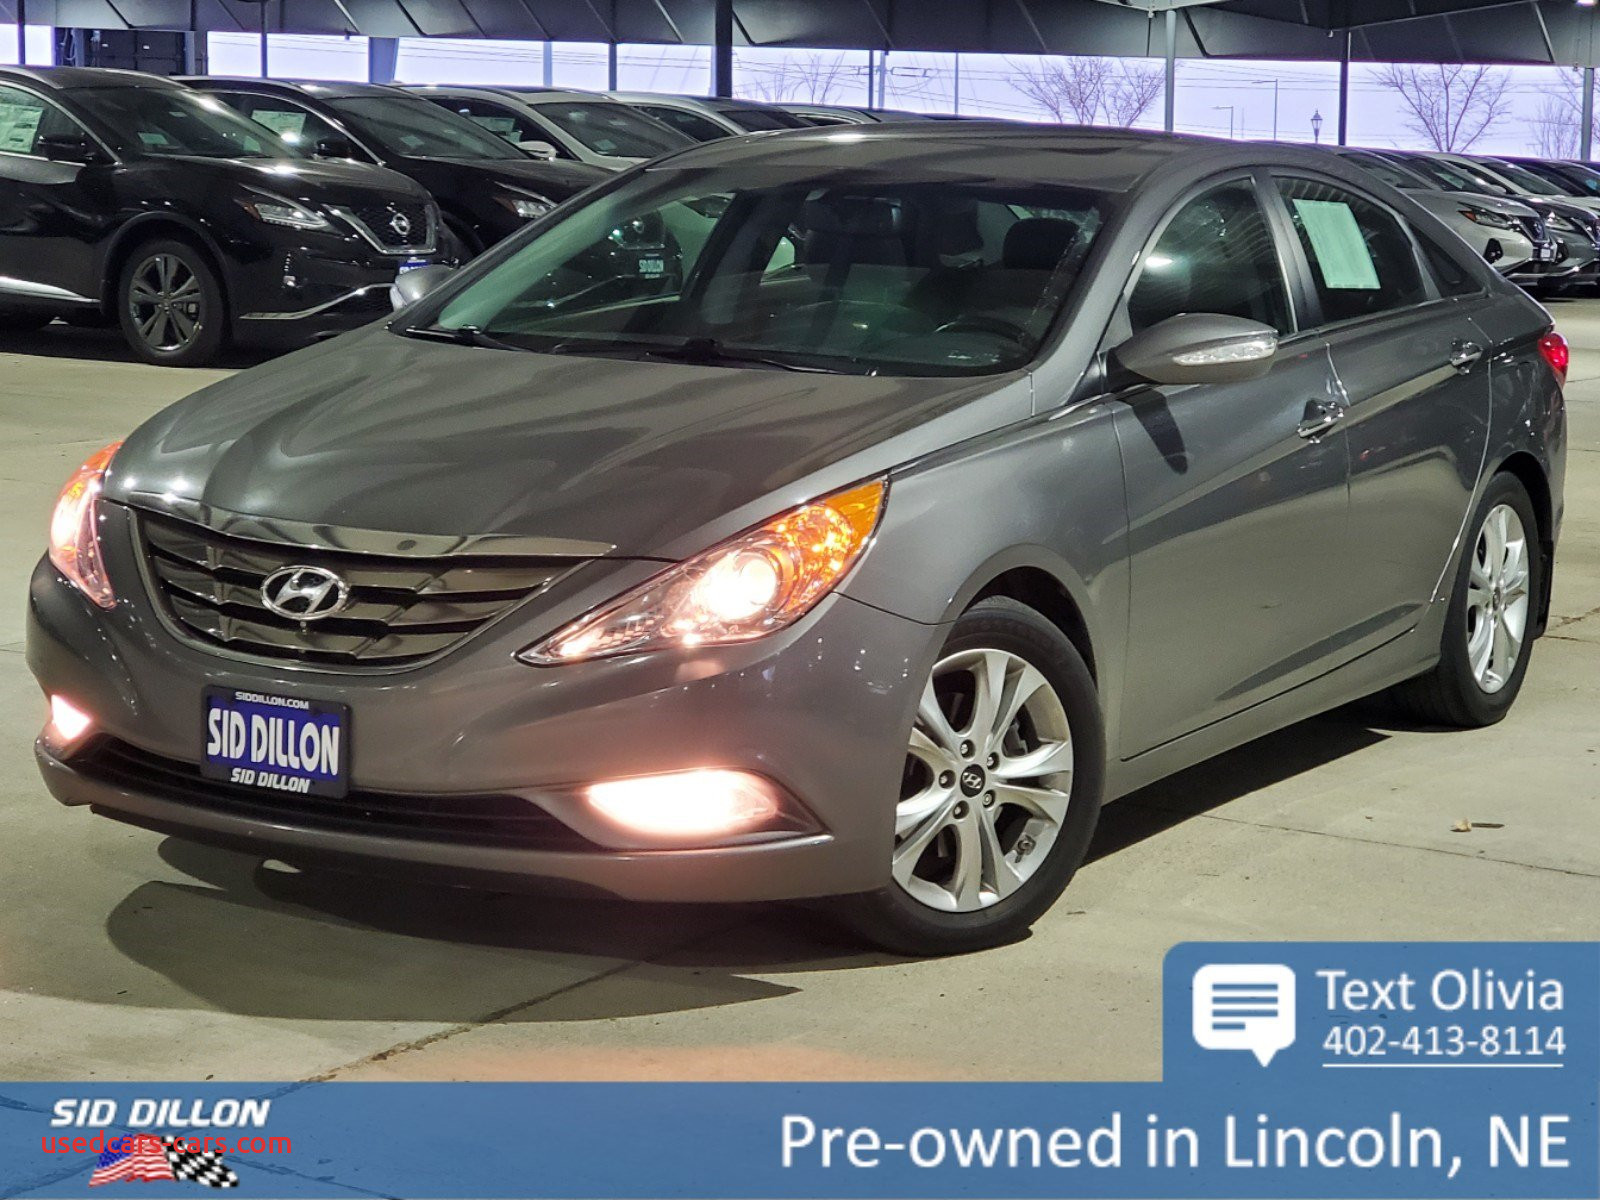 2013 Hyundai sonata Se Sedan Lovely Pre Owned 2013 Hyundai sonata Limited Fwd 4 Door Sedan